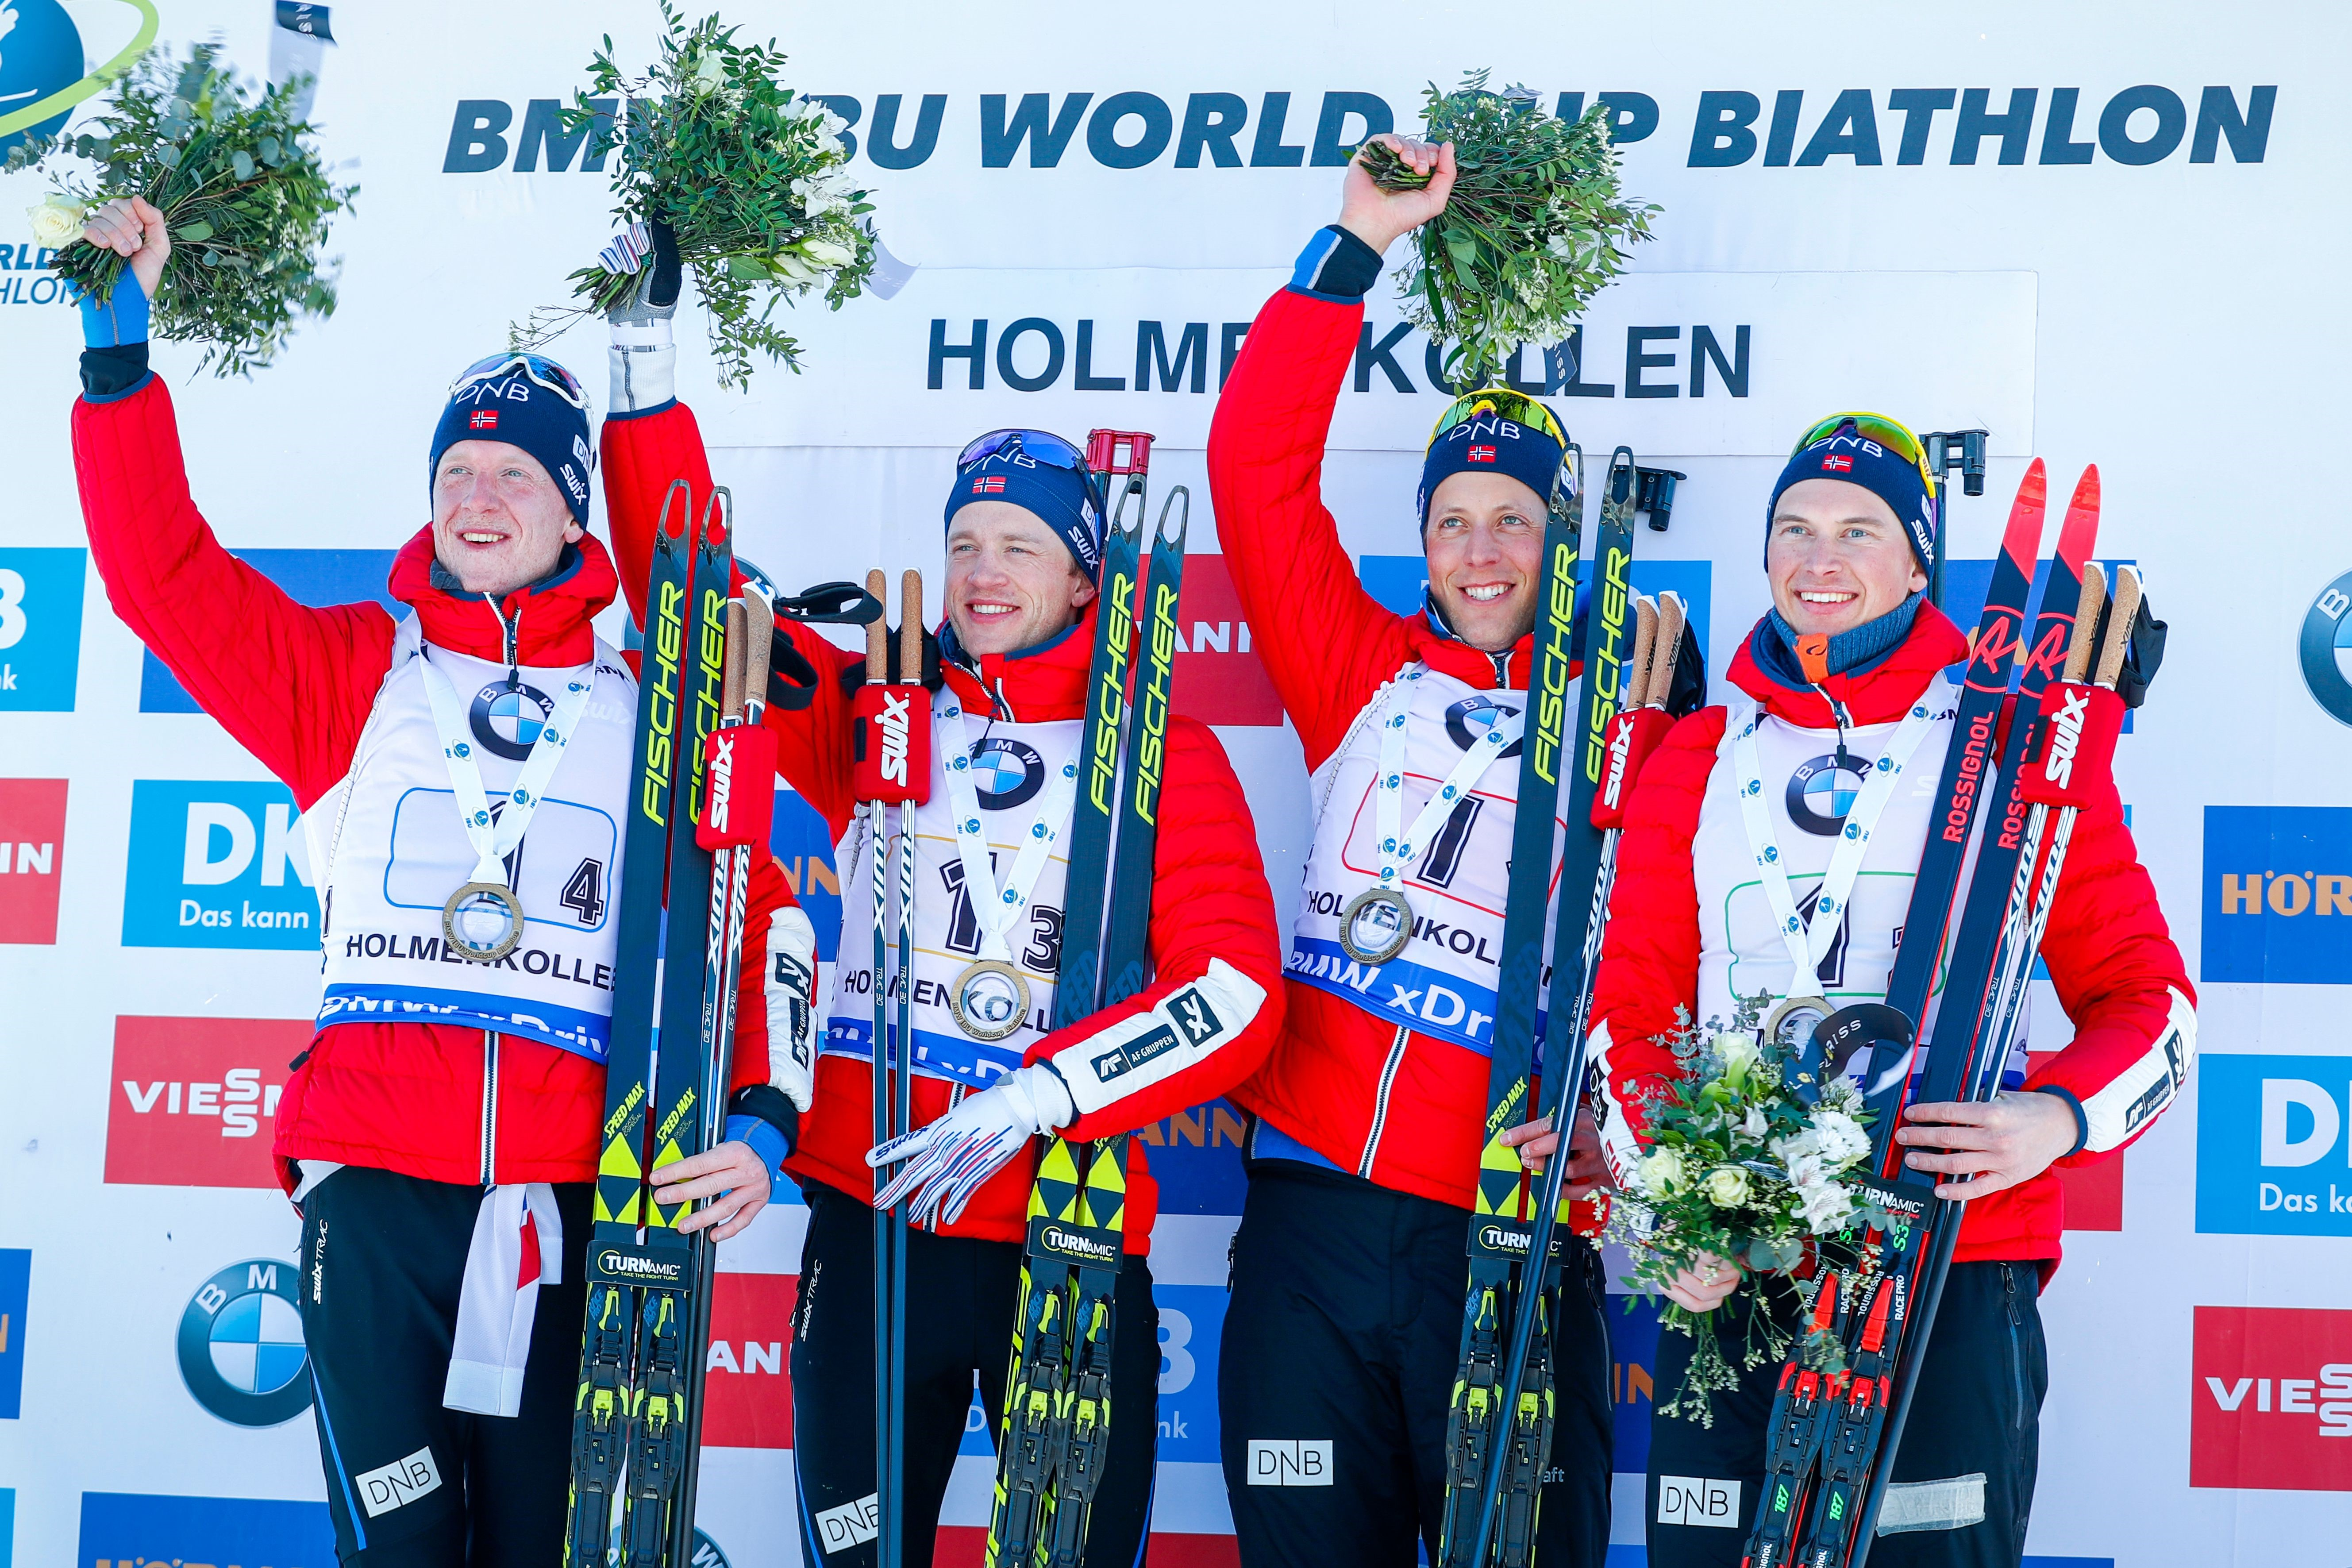 (L-R) Norway's Johannes Thingnes Boe, Tarjei Boe, Lars Helge Birkeland and Henrik L'abee-Lund pose on the podium after winning the IBU Biathlon World Cup Men's 4x7,5 km Relay event in Holmenkollen, Oslo, on March 18. 2018.